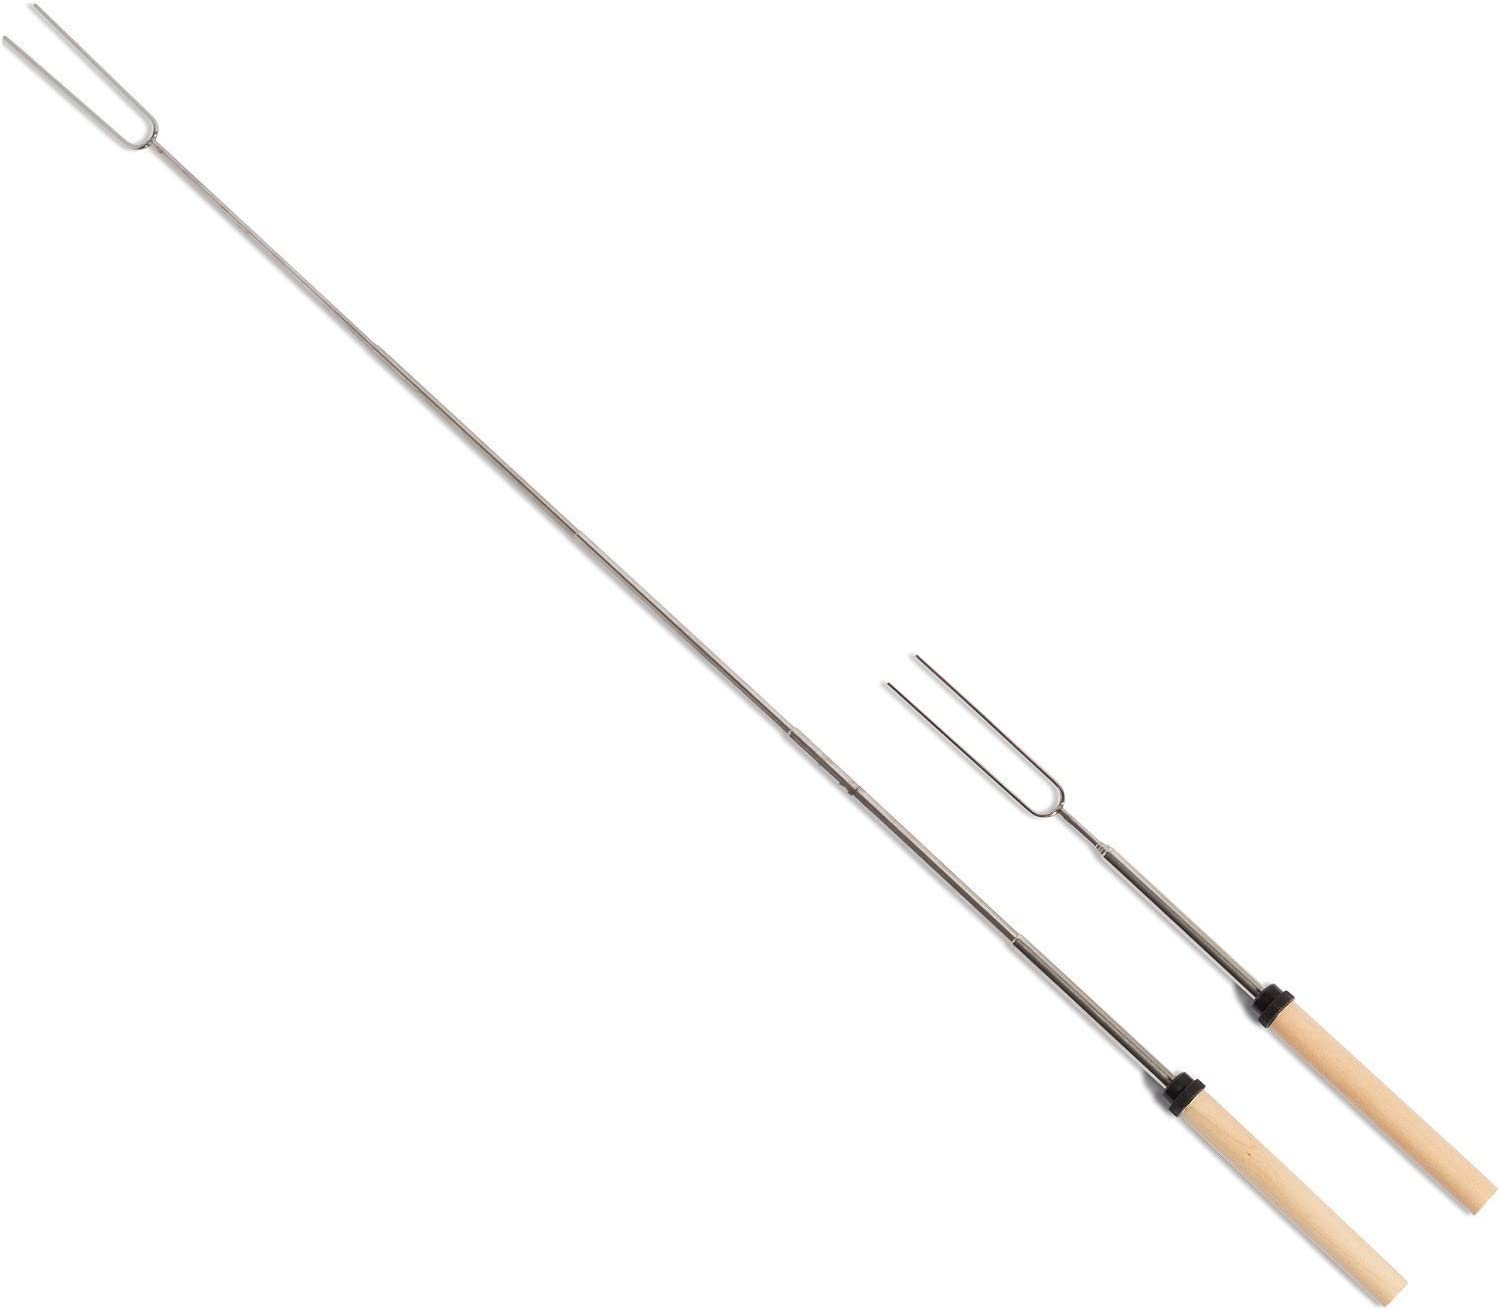 B01GZZ7NK8 Yakura 8 Piece Marshmallow Roasting Sticks, Telescoping Smore Skewers For Bbq Hot Dog Fork Patio Fire Pit Camping 61CjSAH9UOL